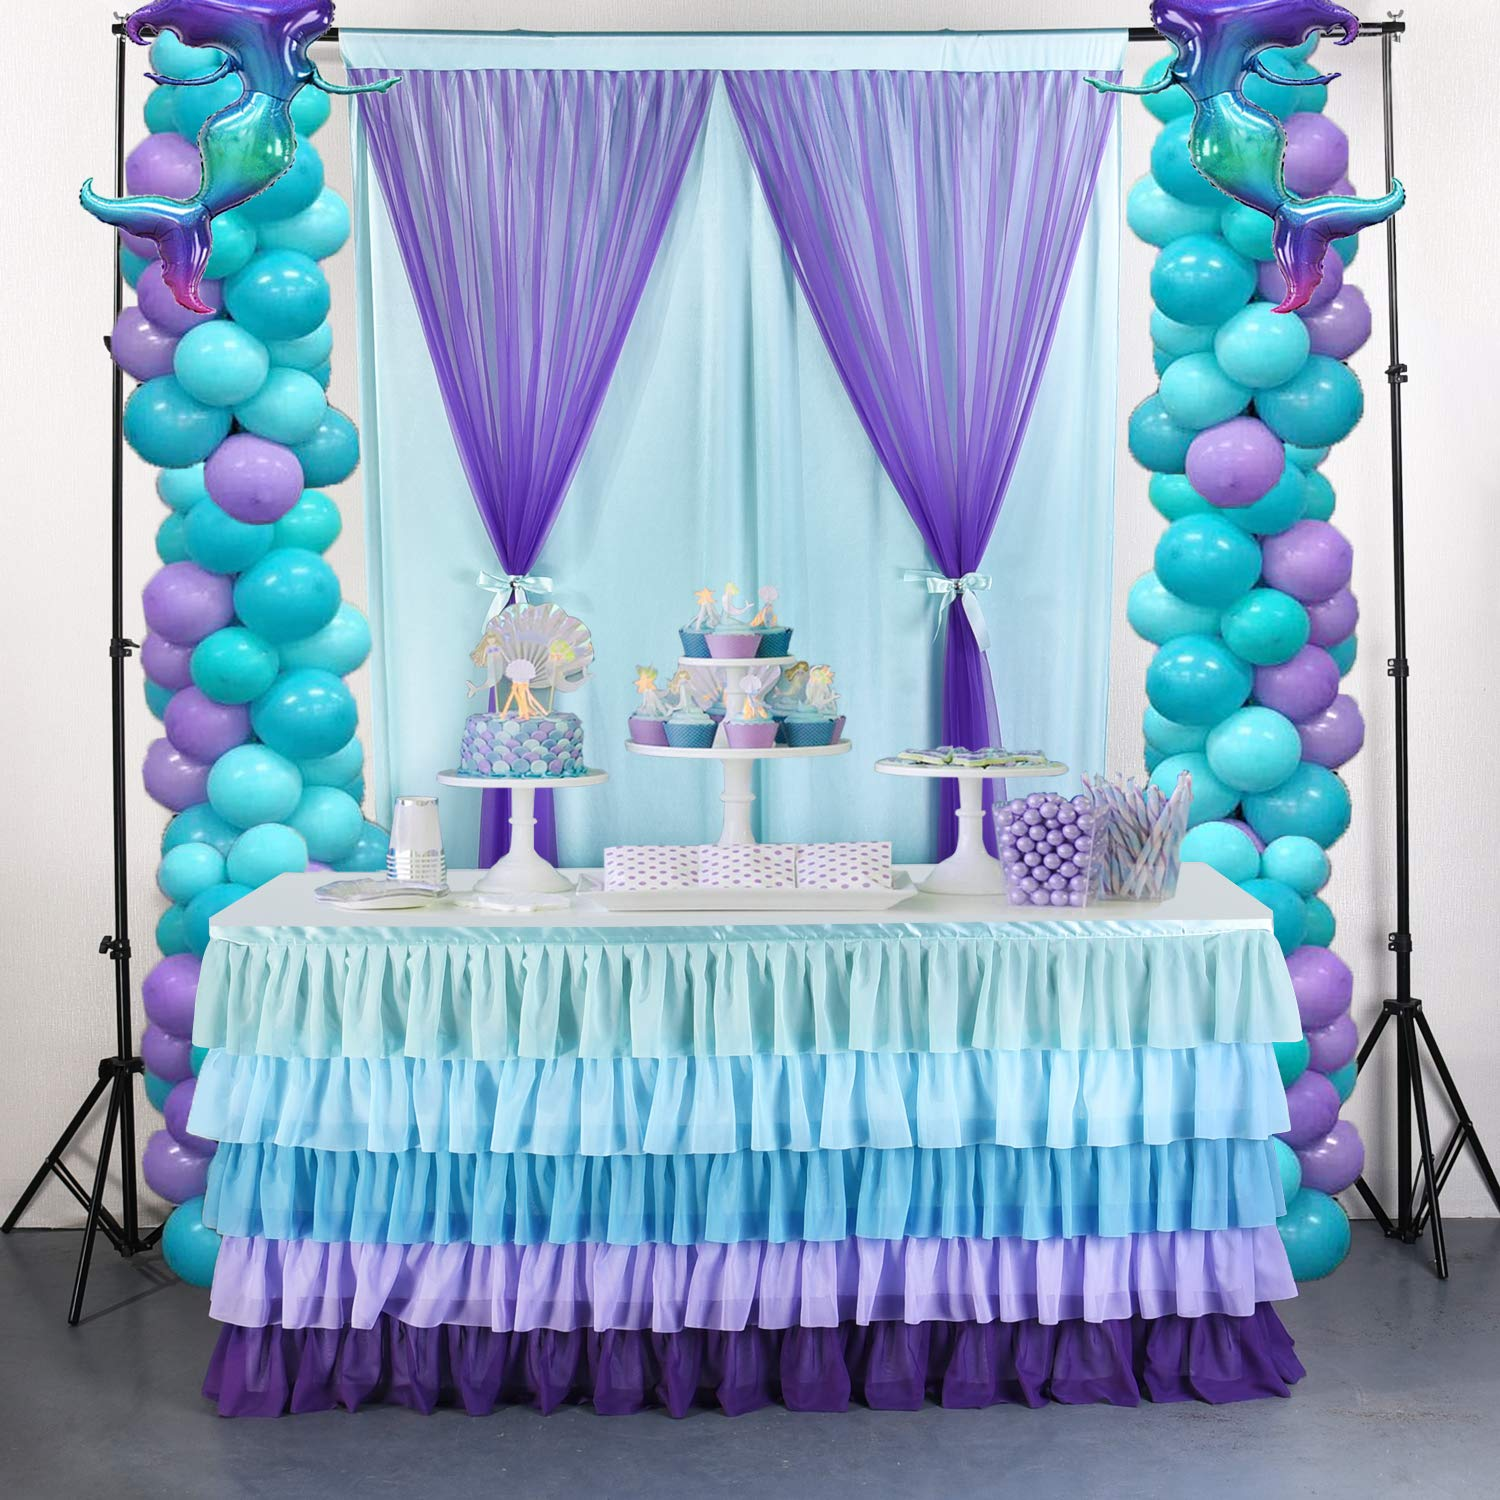 14FT Mermaid Tulle Table Skirt Chiffon Tutu Table Skirting for Rectangle Table or Round Table for Wedding,Birthday Party,Home Decoration, Baby Shower (L167inH30in) by Tao-Ge